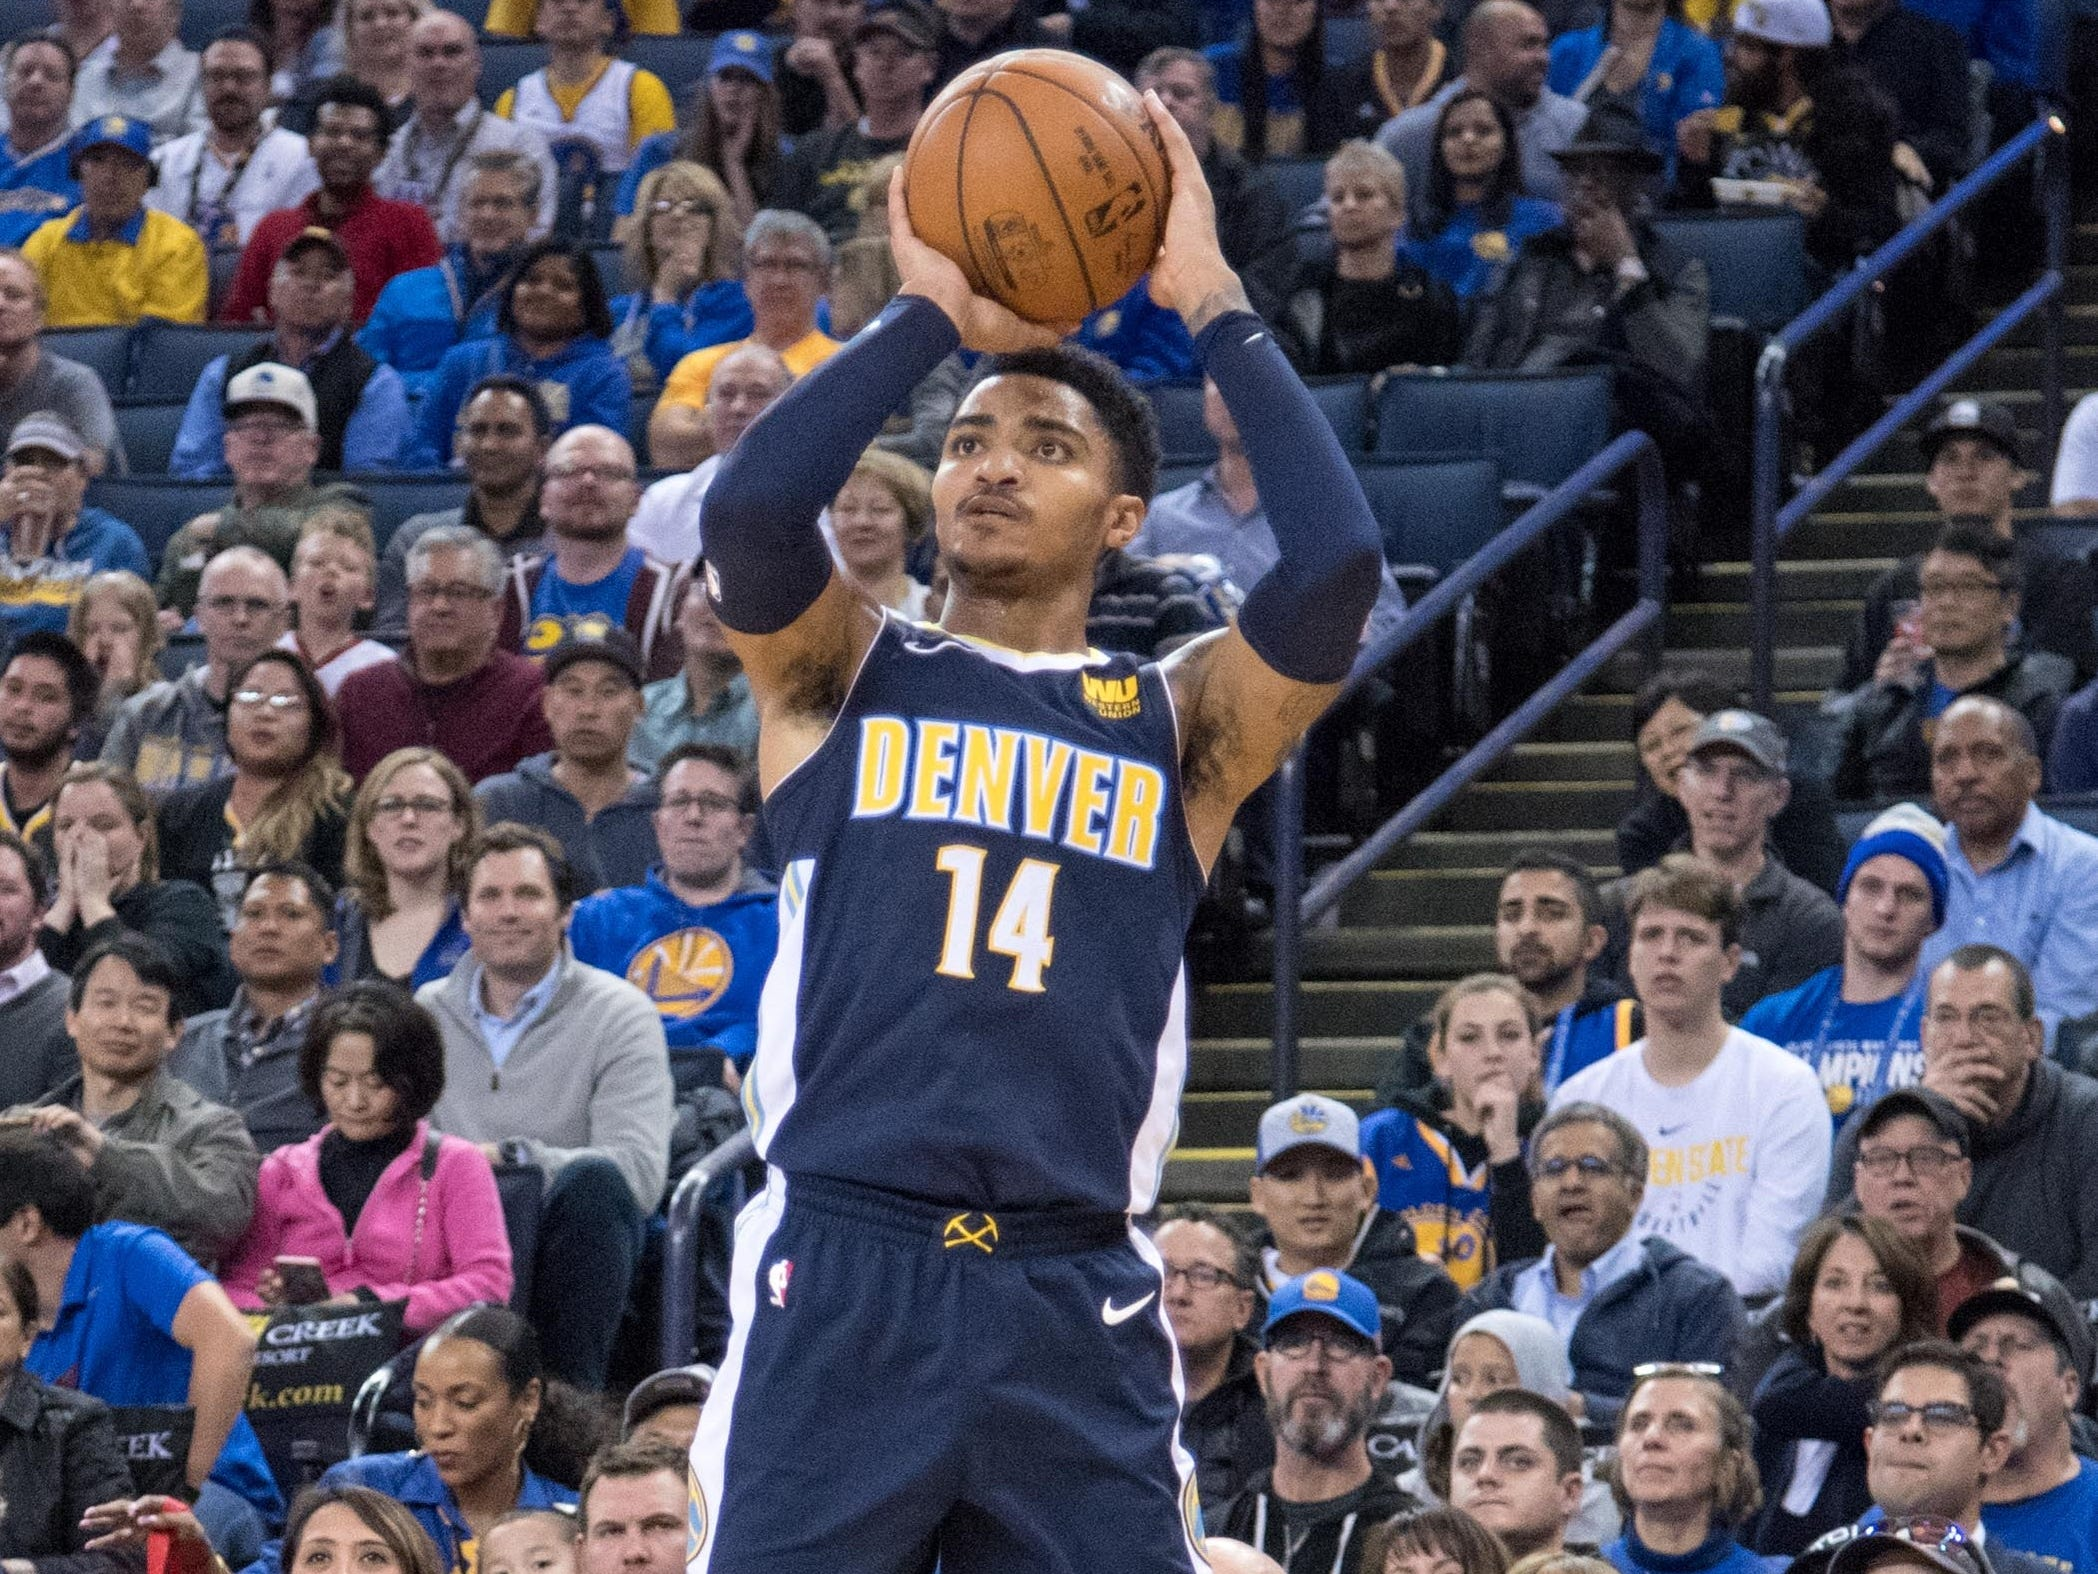 Gary Harris, Denver Nuggets — 24 (born 9/14/1994)